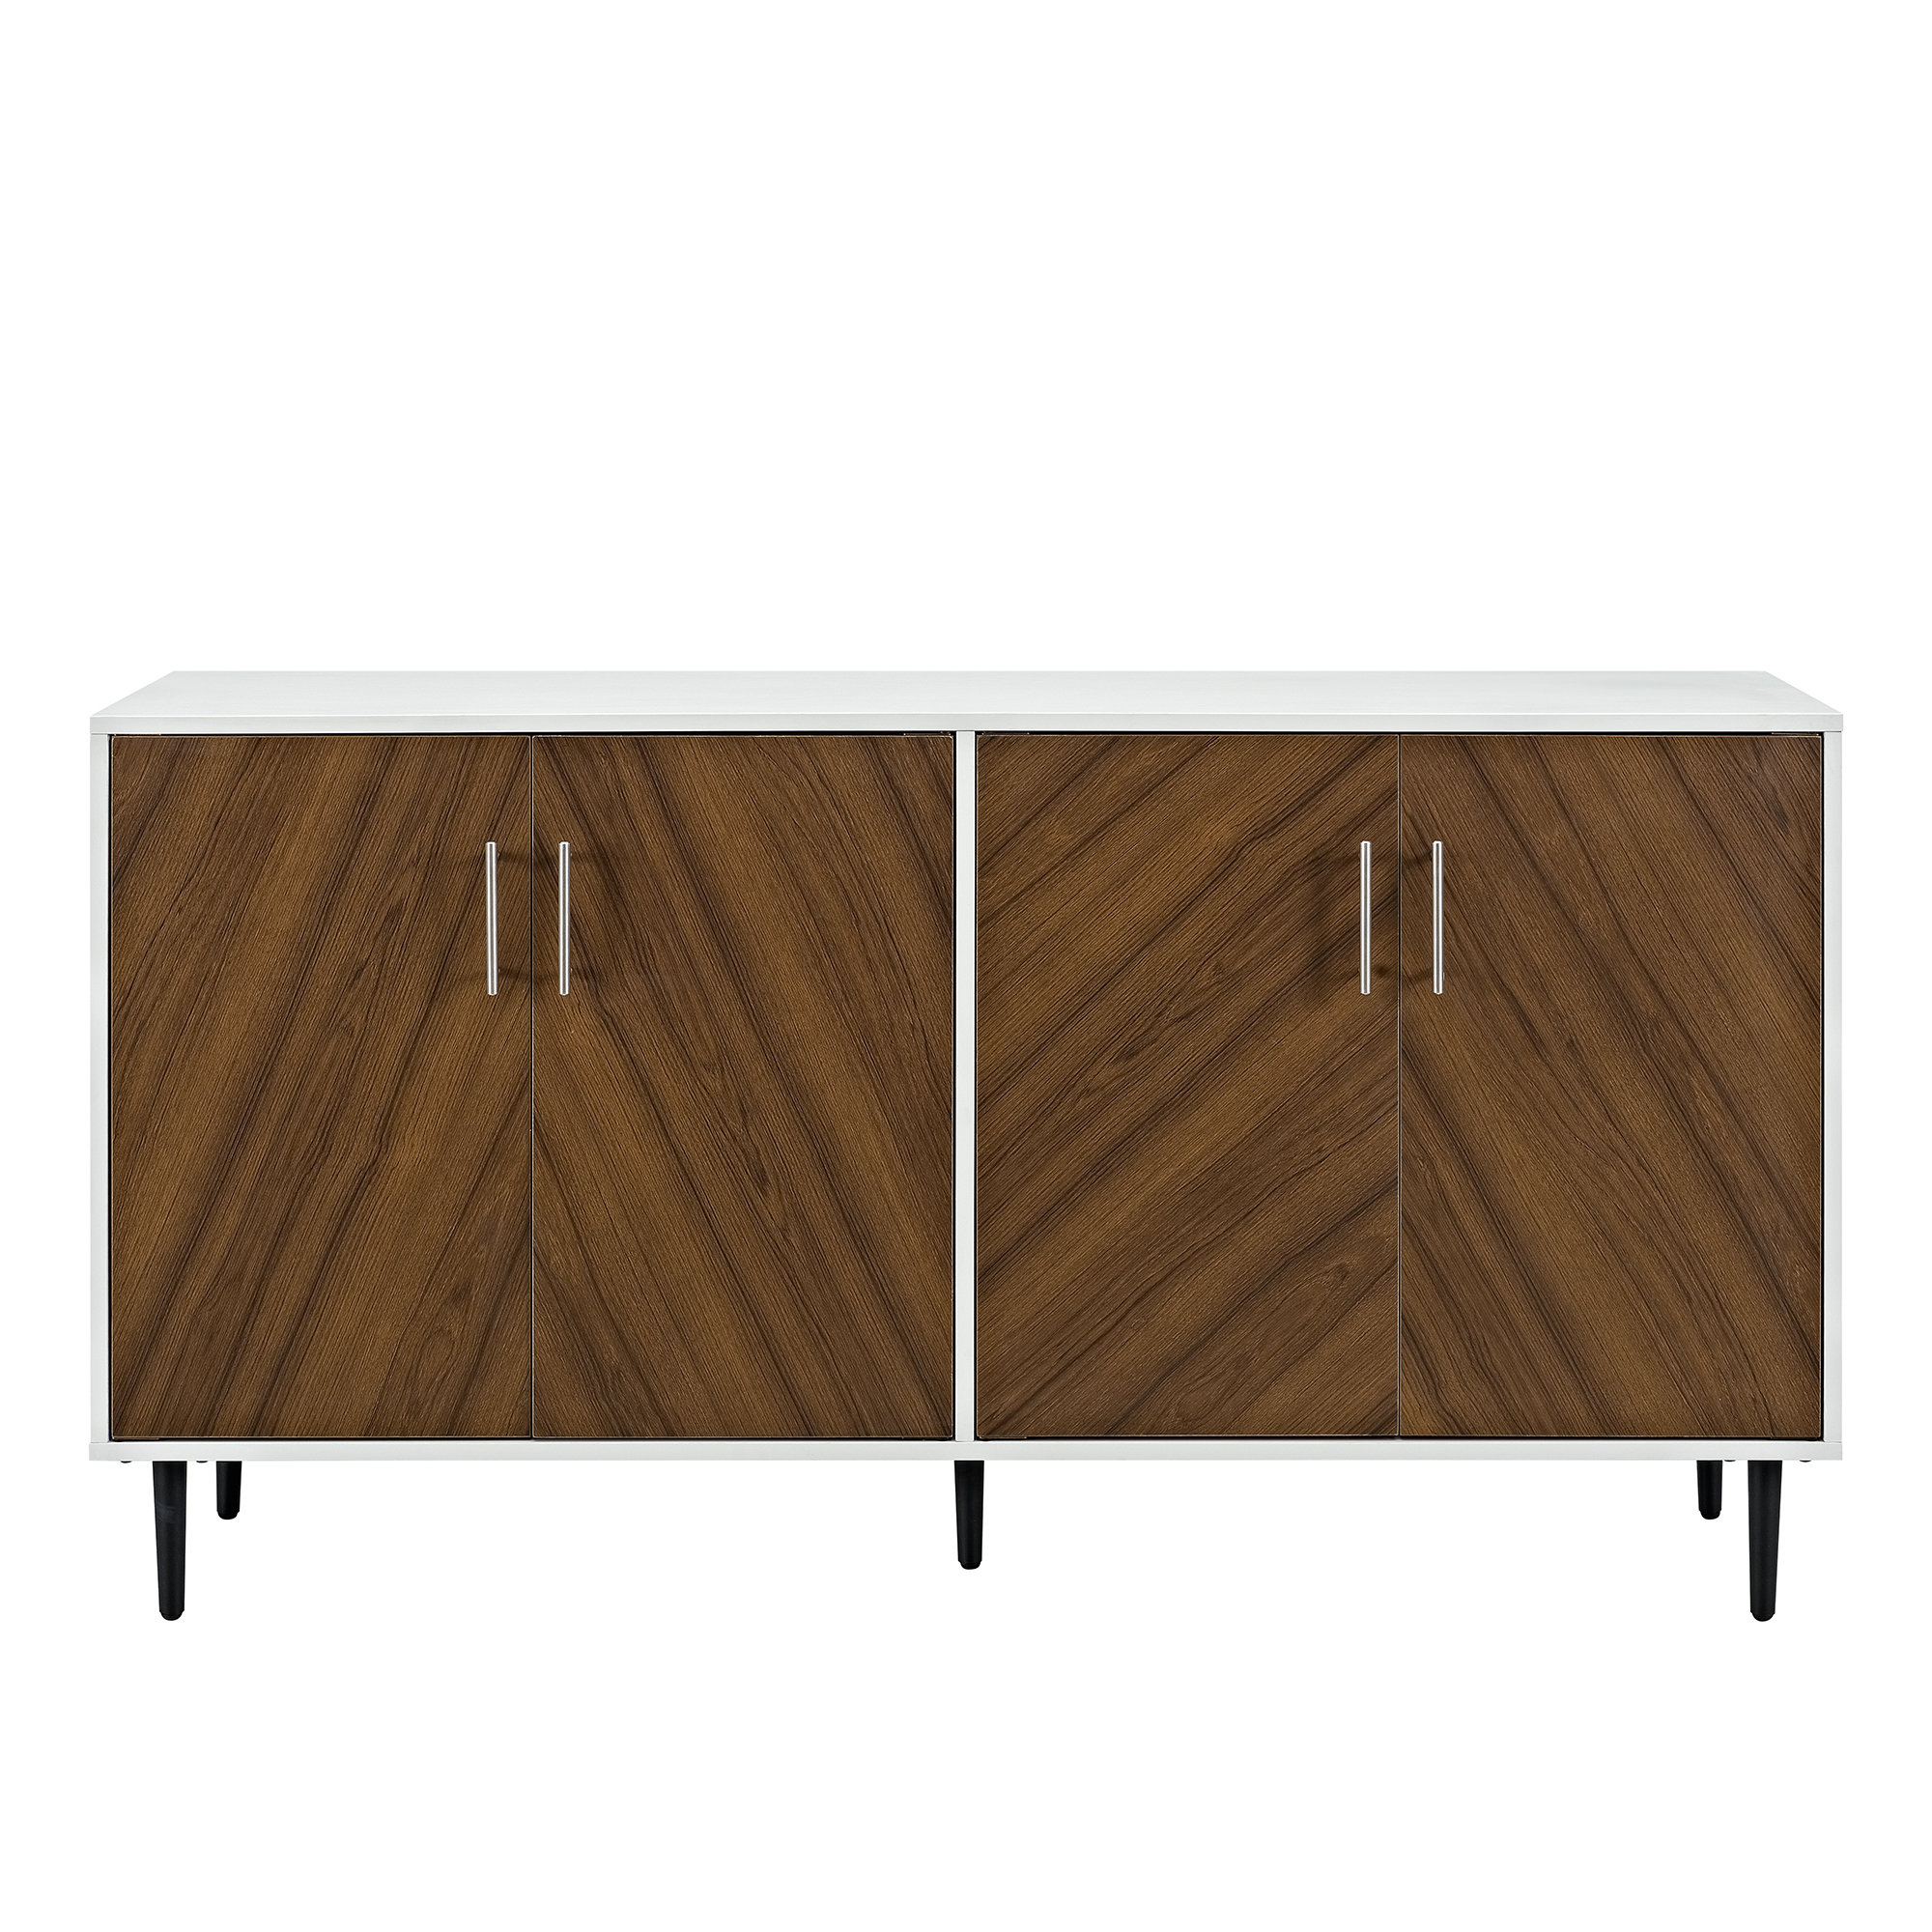 Inspiration about Modern & Contemporary Colorful Credenza | Allmodern Inside Most Recent Lainey Credenzas (#13 of 20)